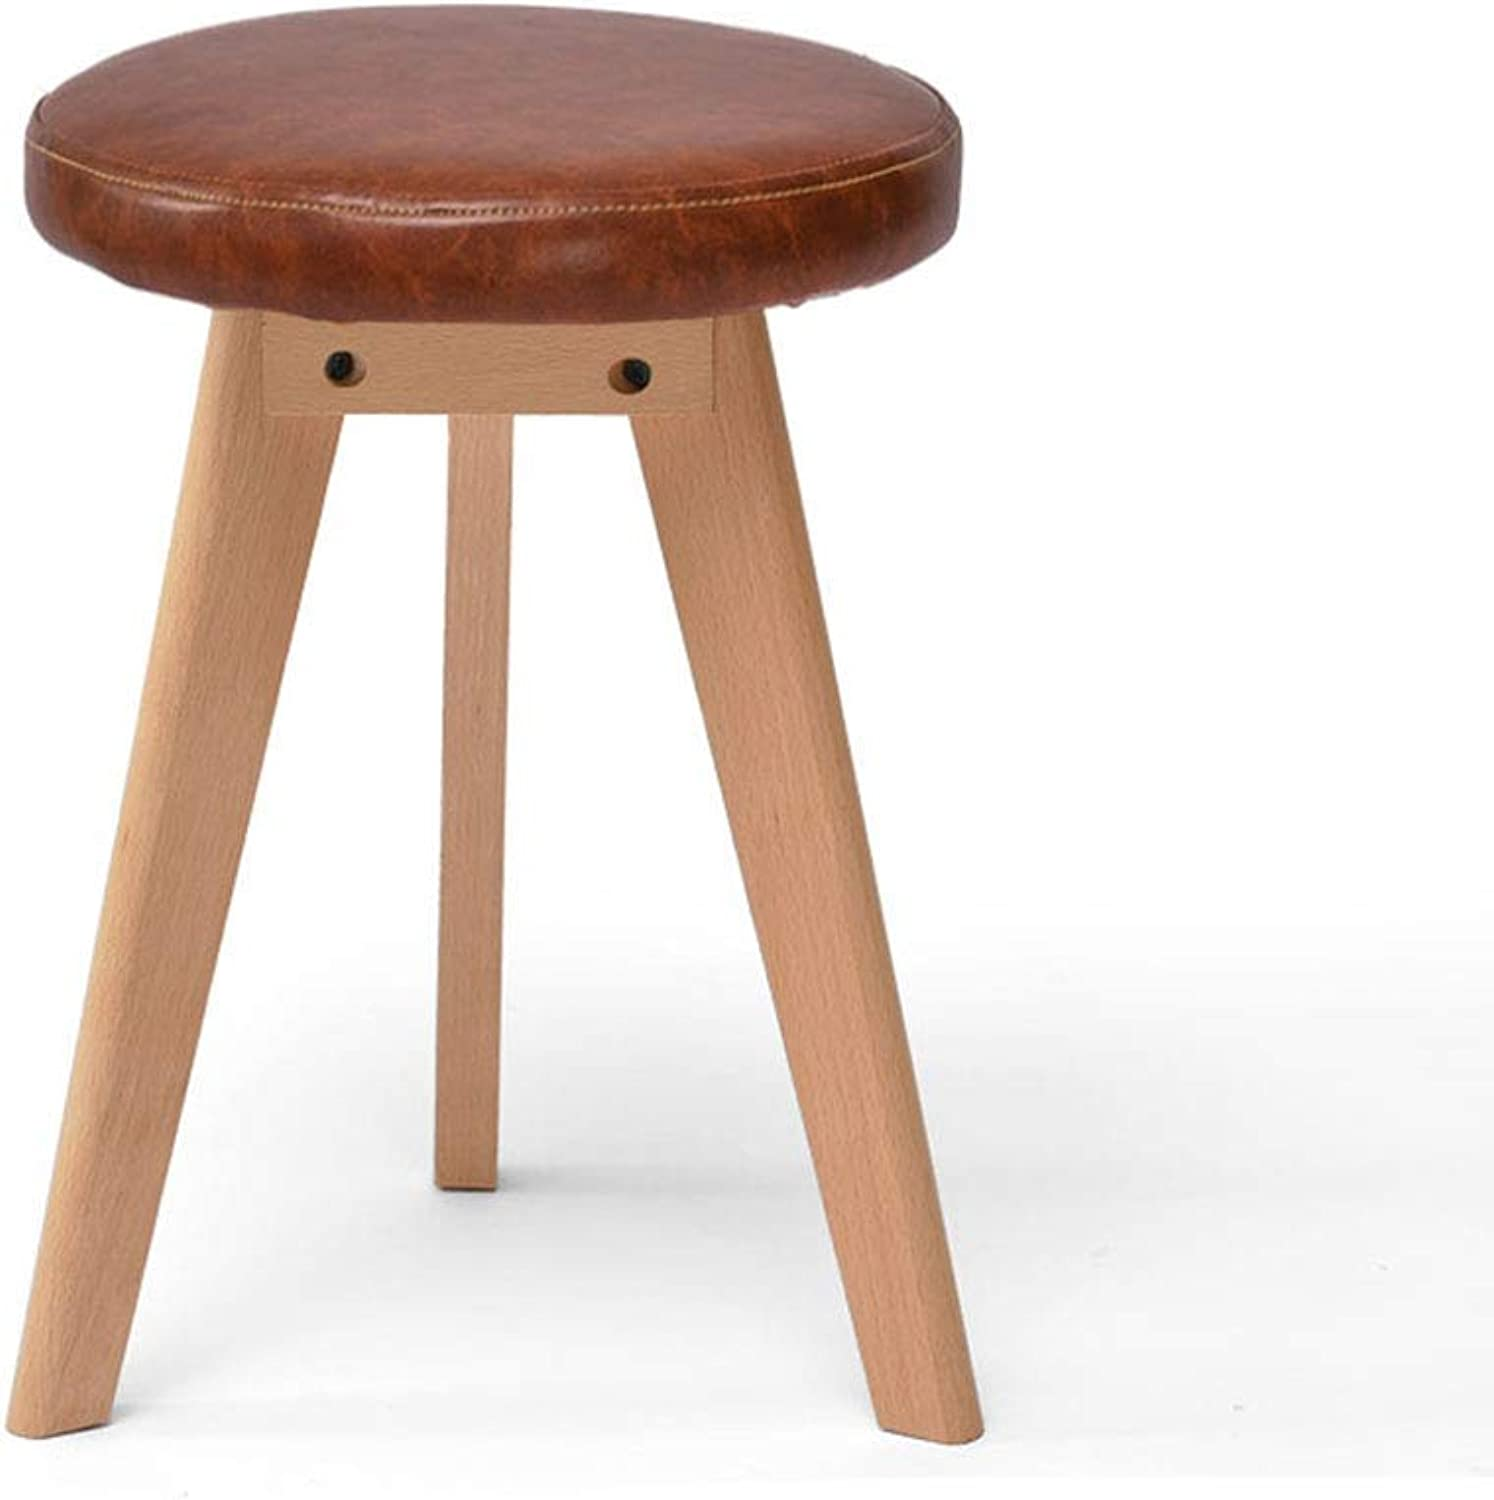 Fashion Creative Solid Wood Stool Home Fabric Dining Stool Small Bench Makeup Stool Simple Stool Dressing Stool (color   Brown)